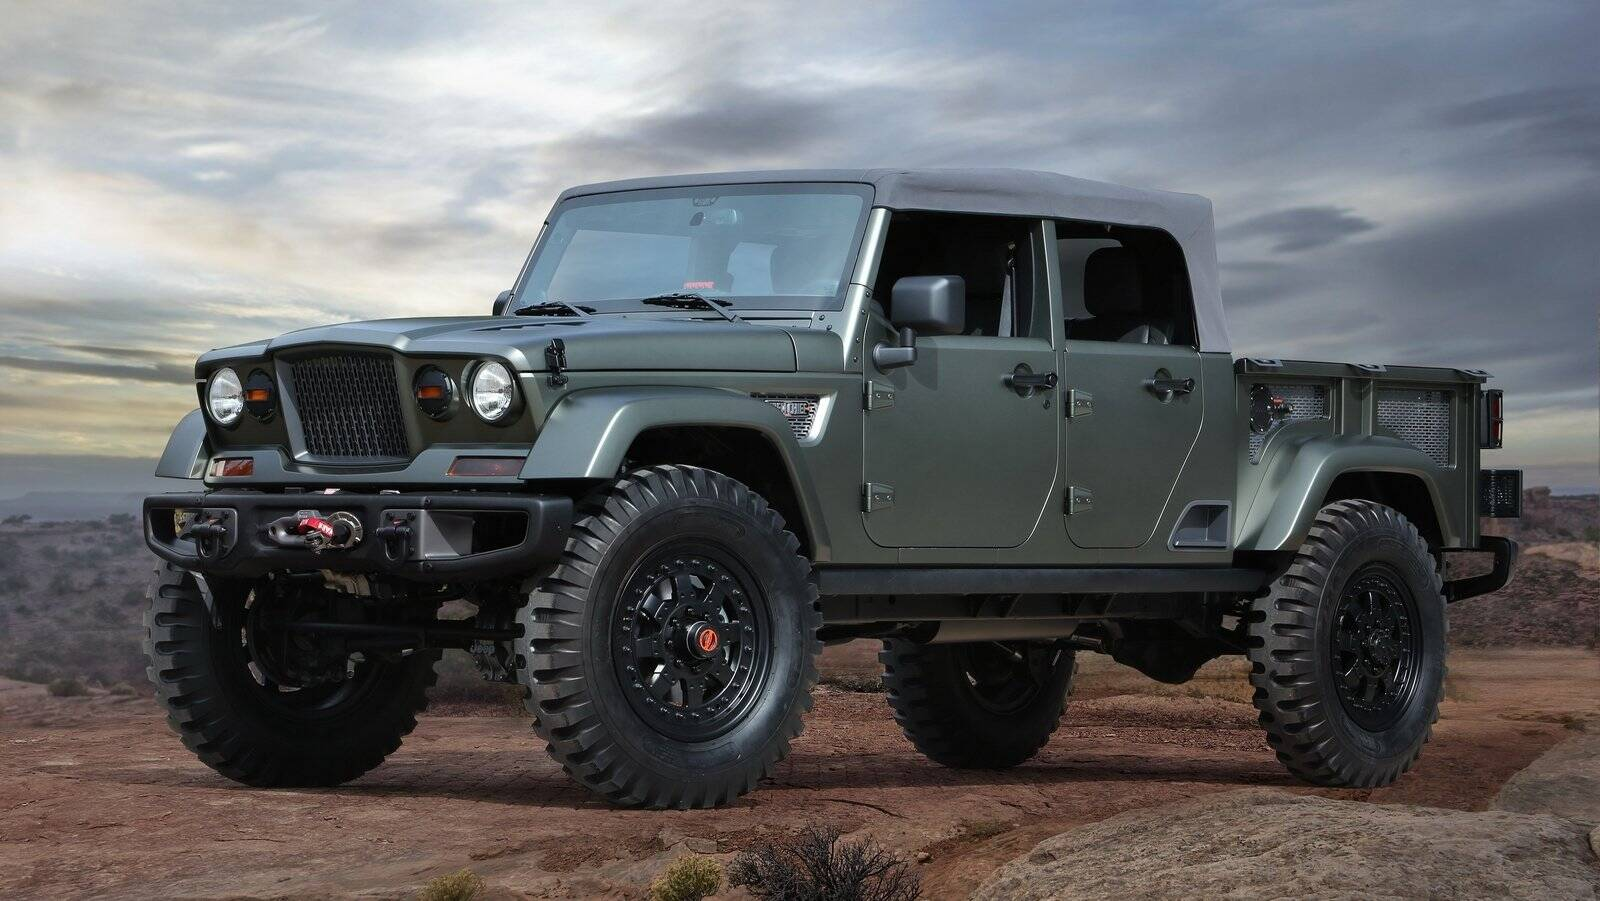 Jeep Ute, Wagoneer And Grand Wagoneer SUVs To Be Funded By $US1b Investment